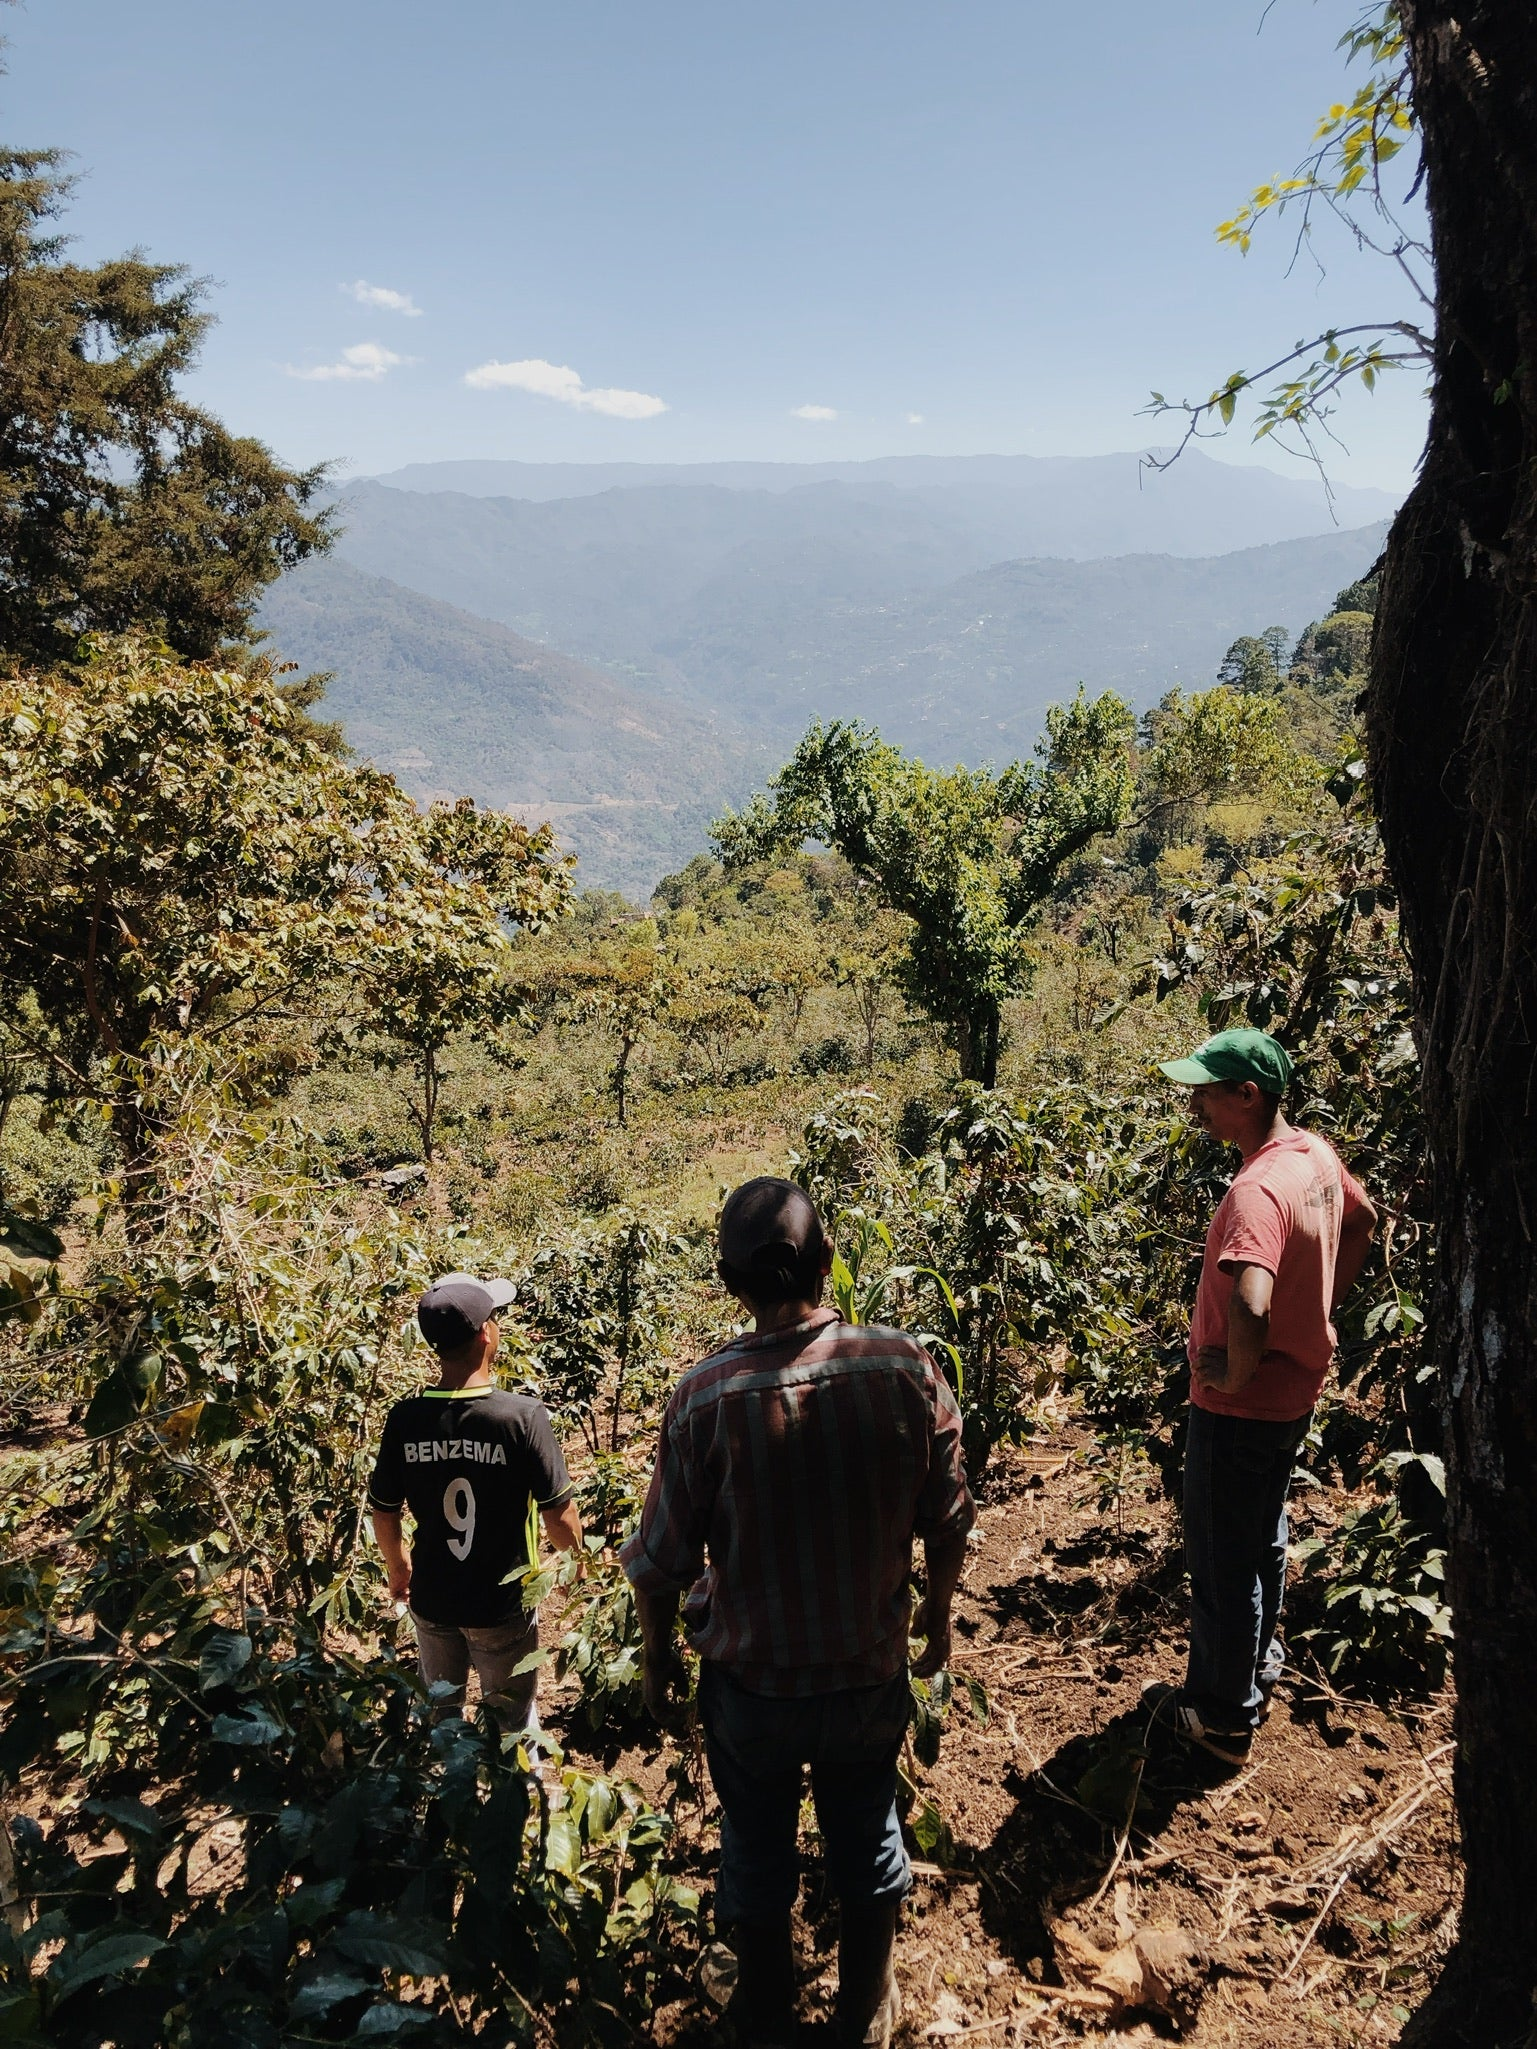 Three coffee farmers look out over a mountain valley in northern Guatemala